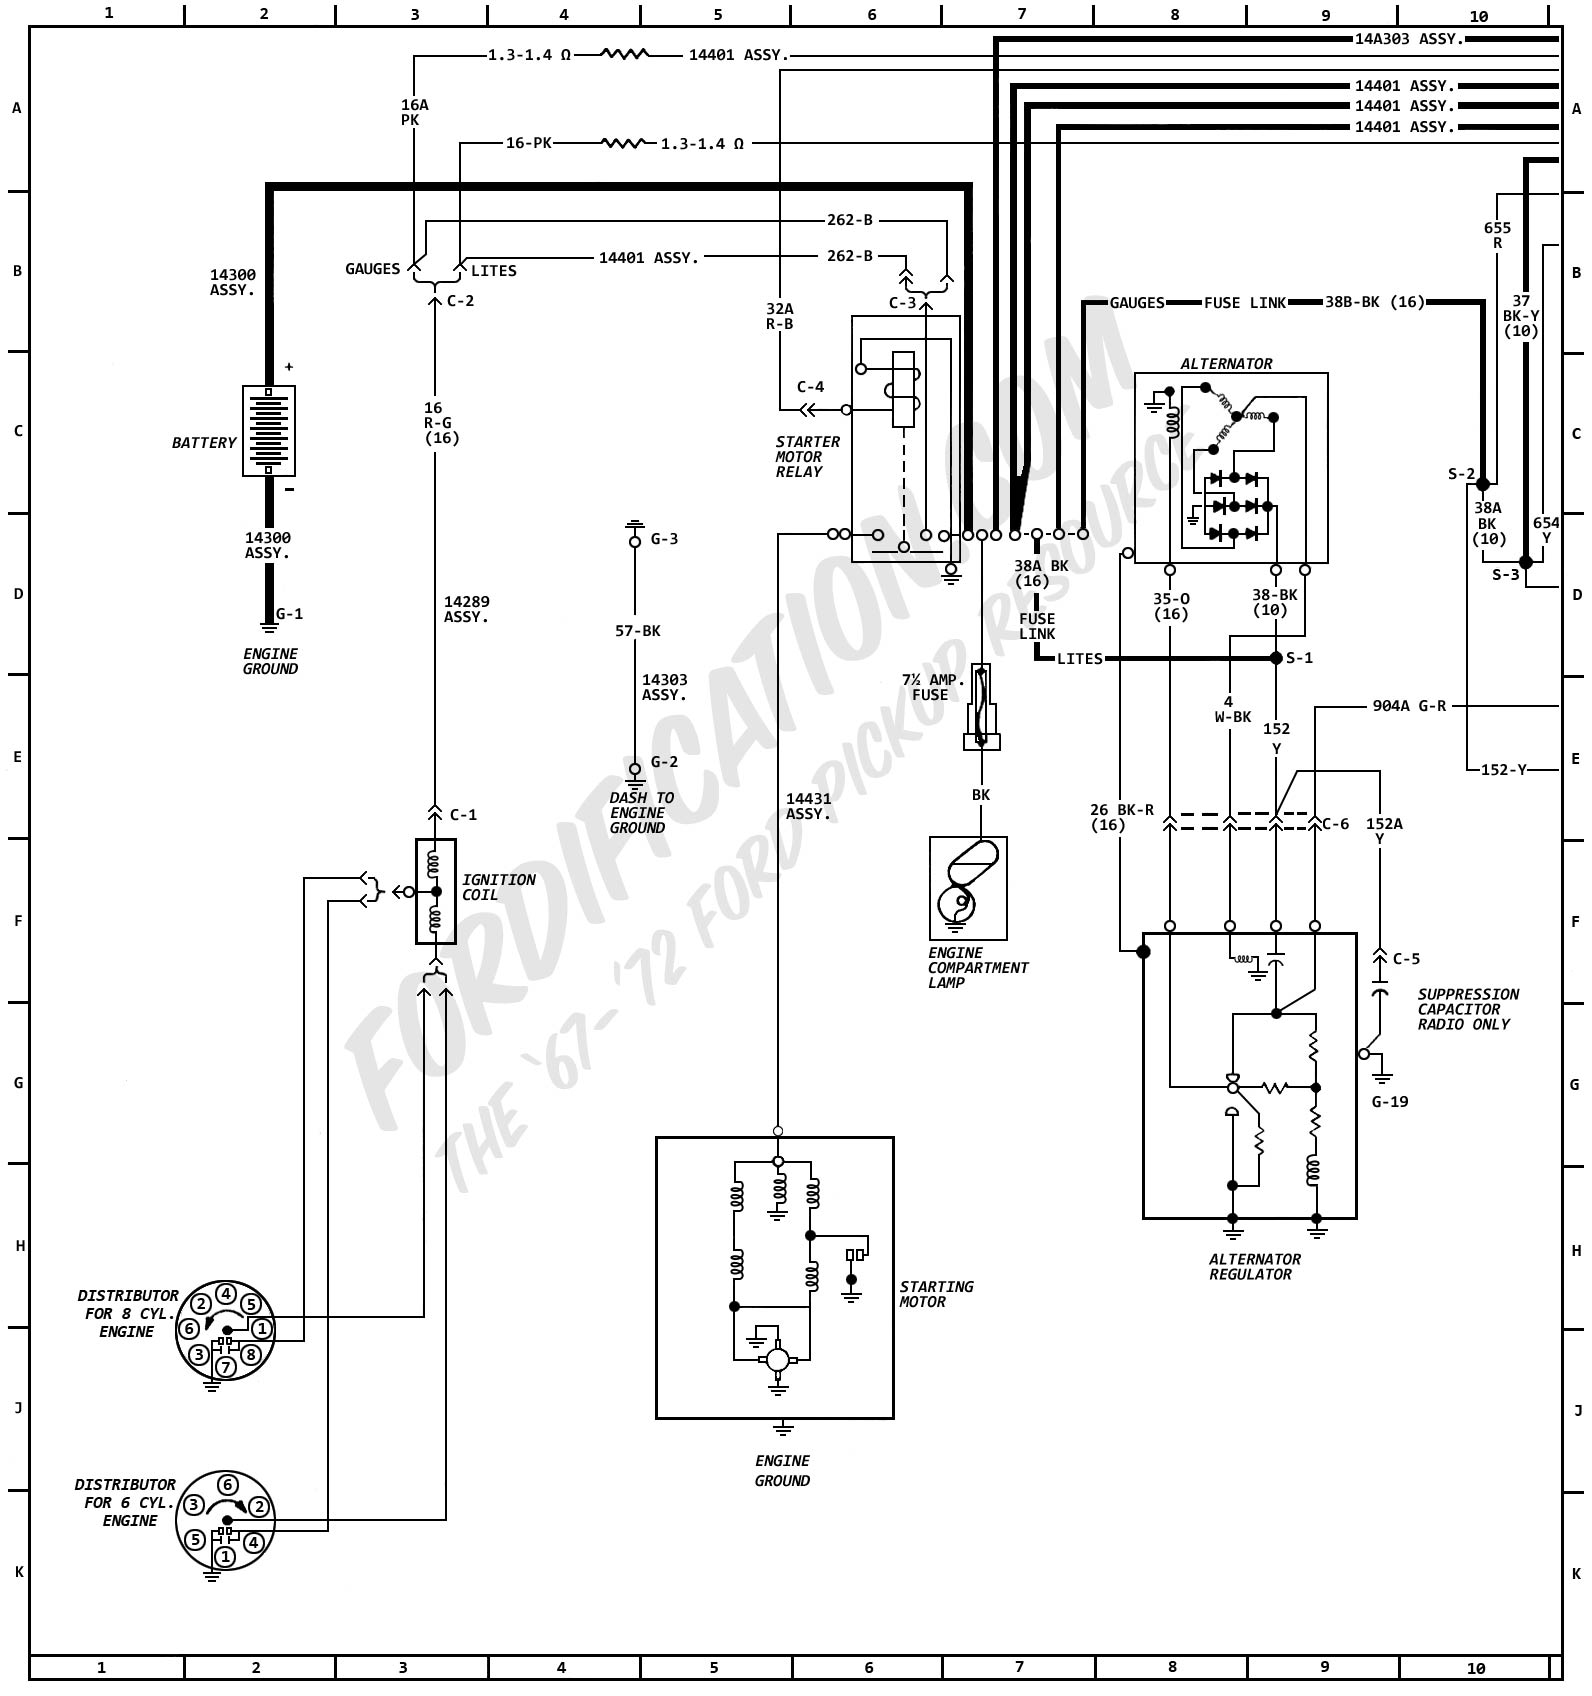 1972MasterWiring_01 1972 ford truck wiring diagrams fordification com 1971 ford f100 ignition switch wiring diagram at gsmportal.co